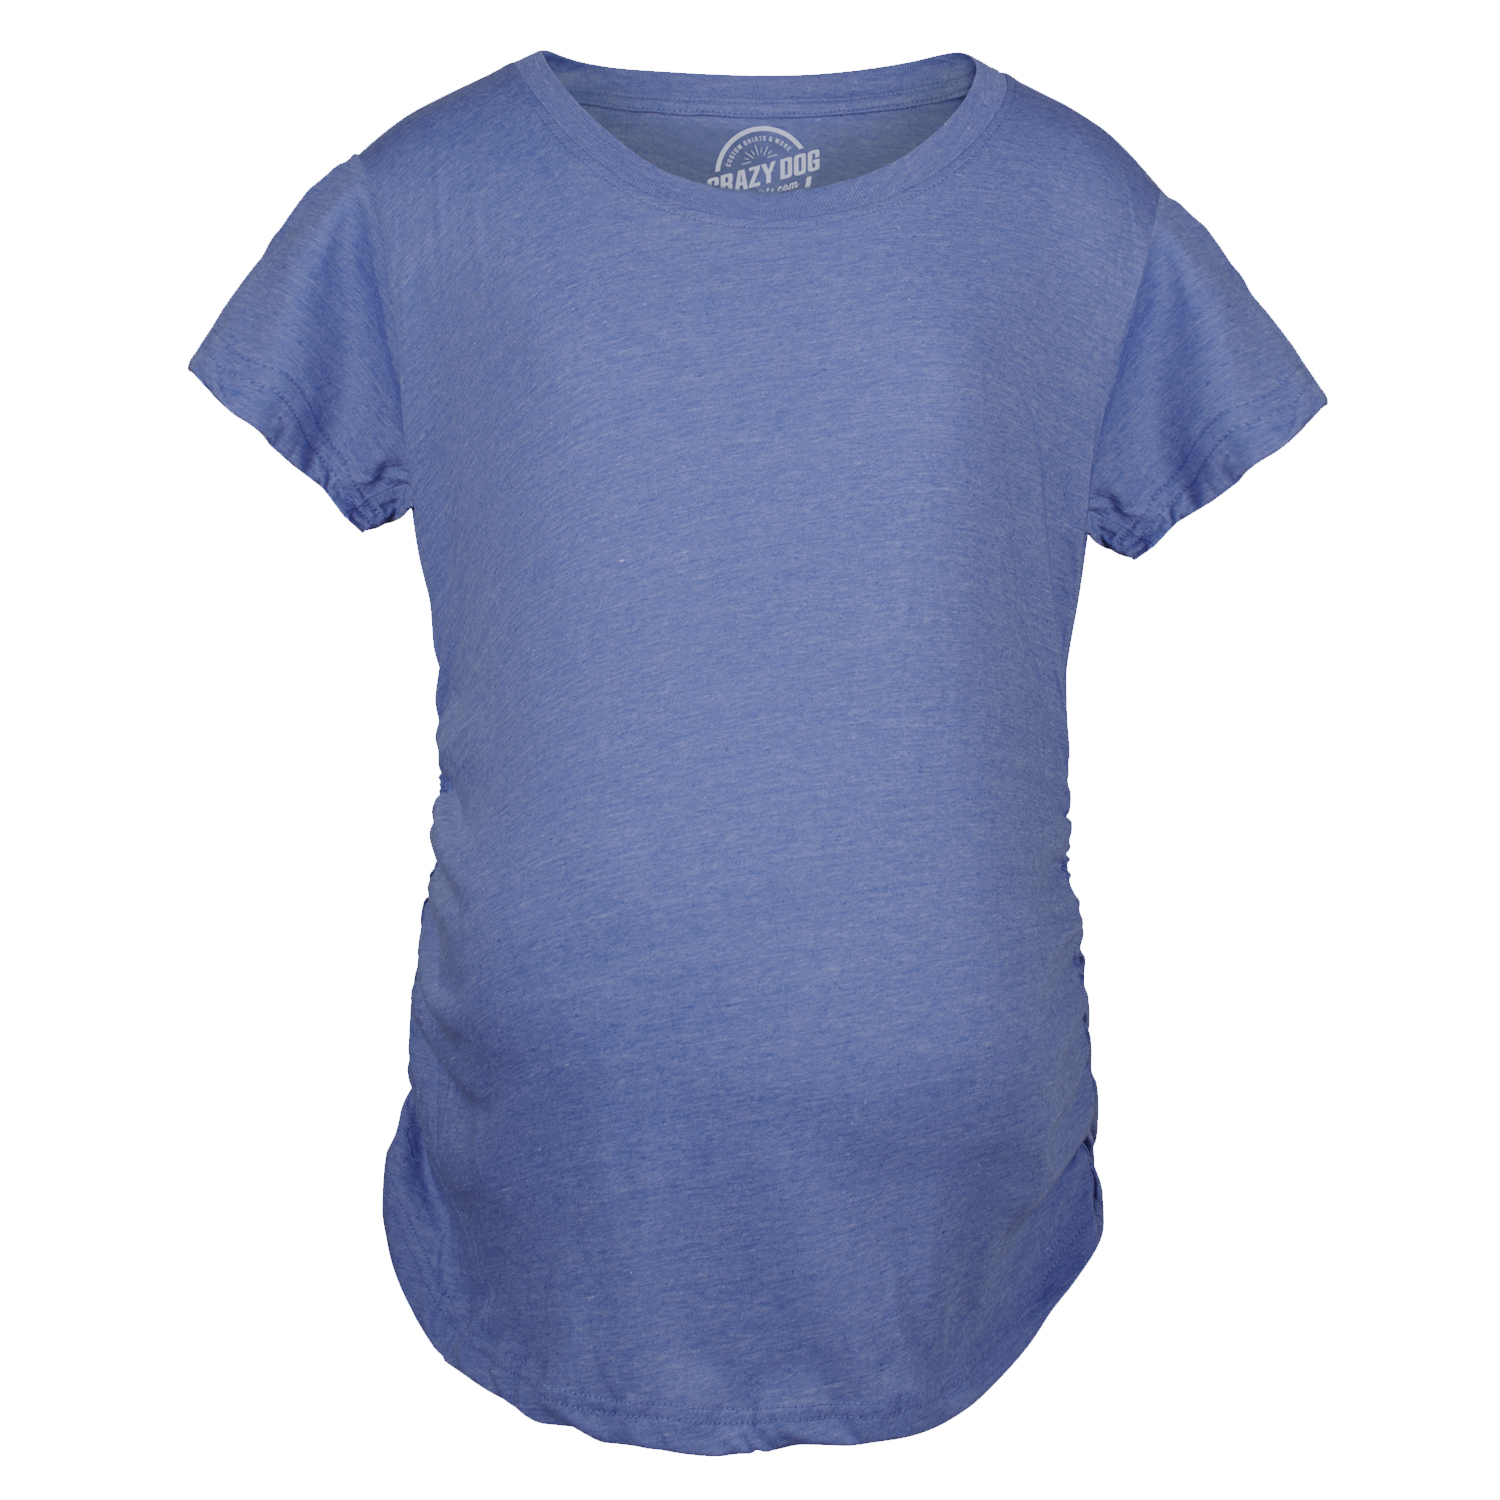 dcf94894b48b3 Women's Maternity Shirt Comfortable Pregnancy Tee Plain Blank I'm ...